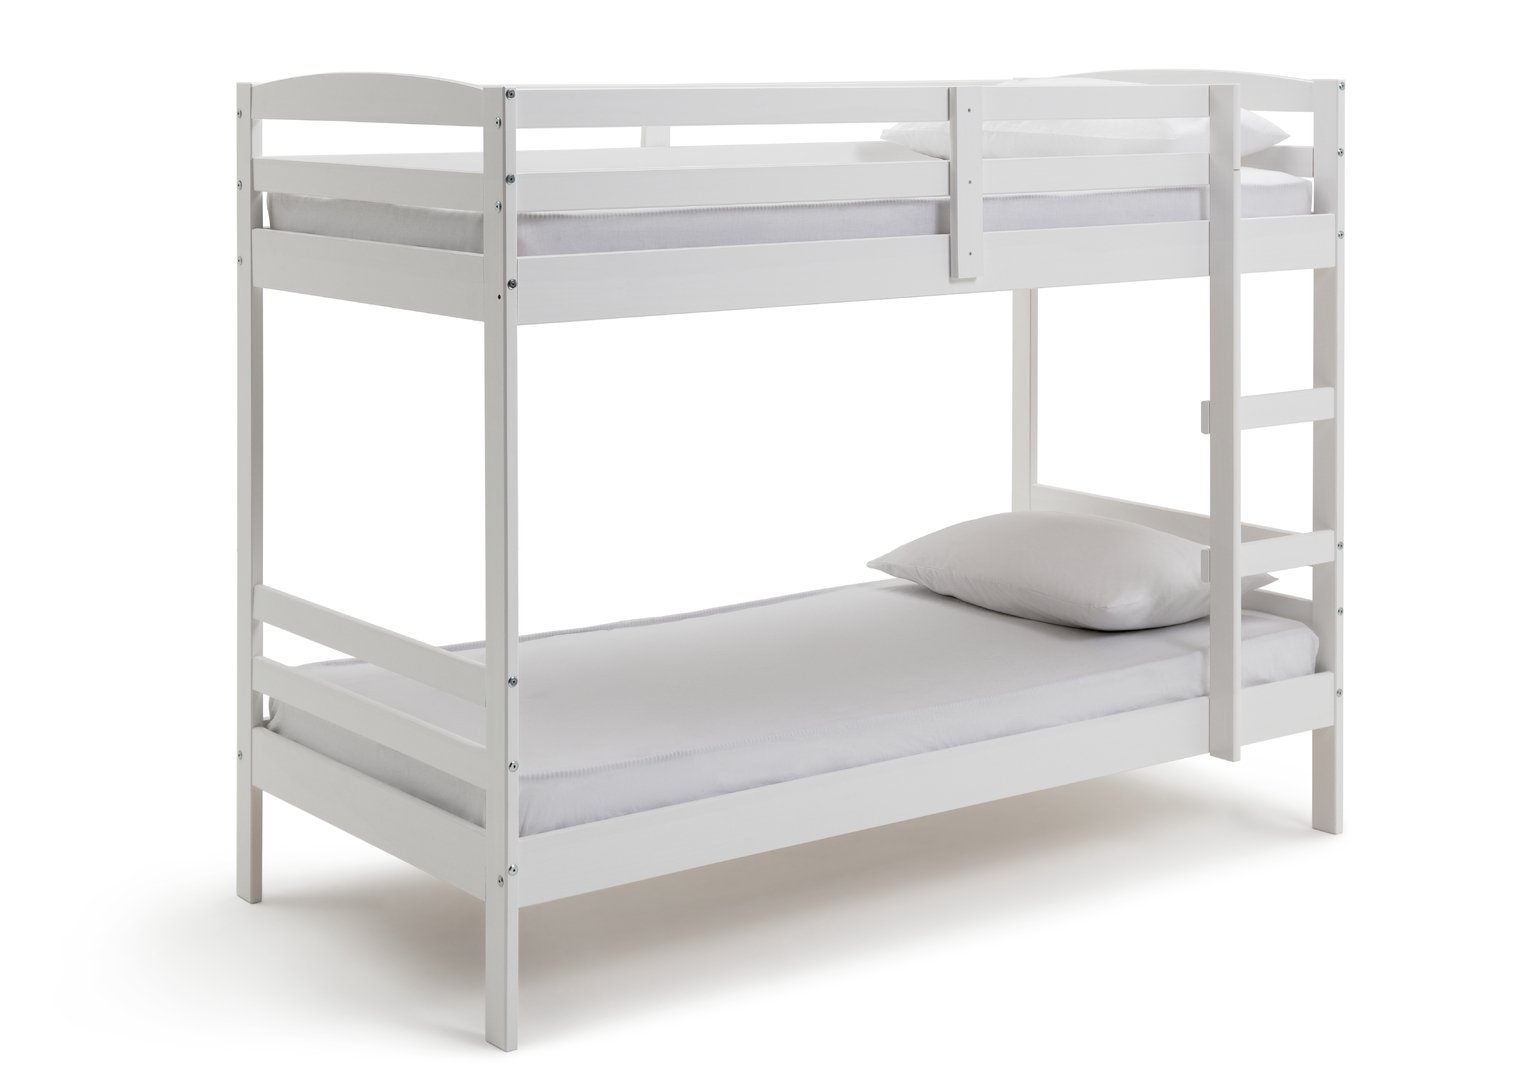 Image of Josie Shorty Bunk Bed with 2 Elliott Mattresses - White